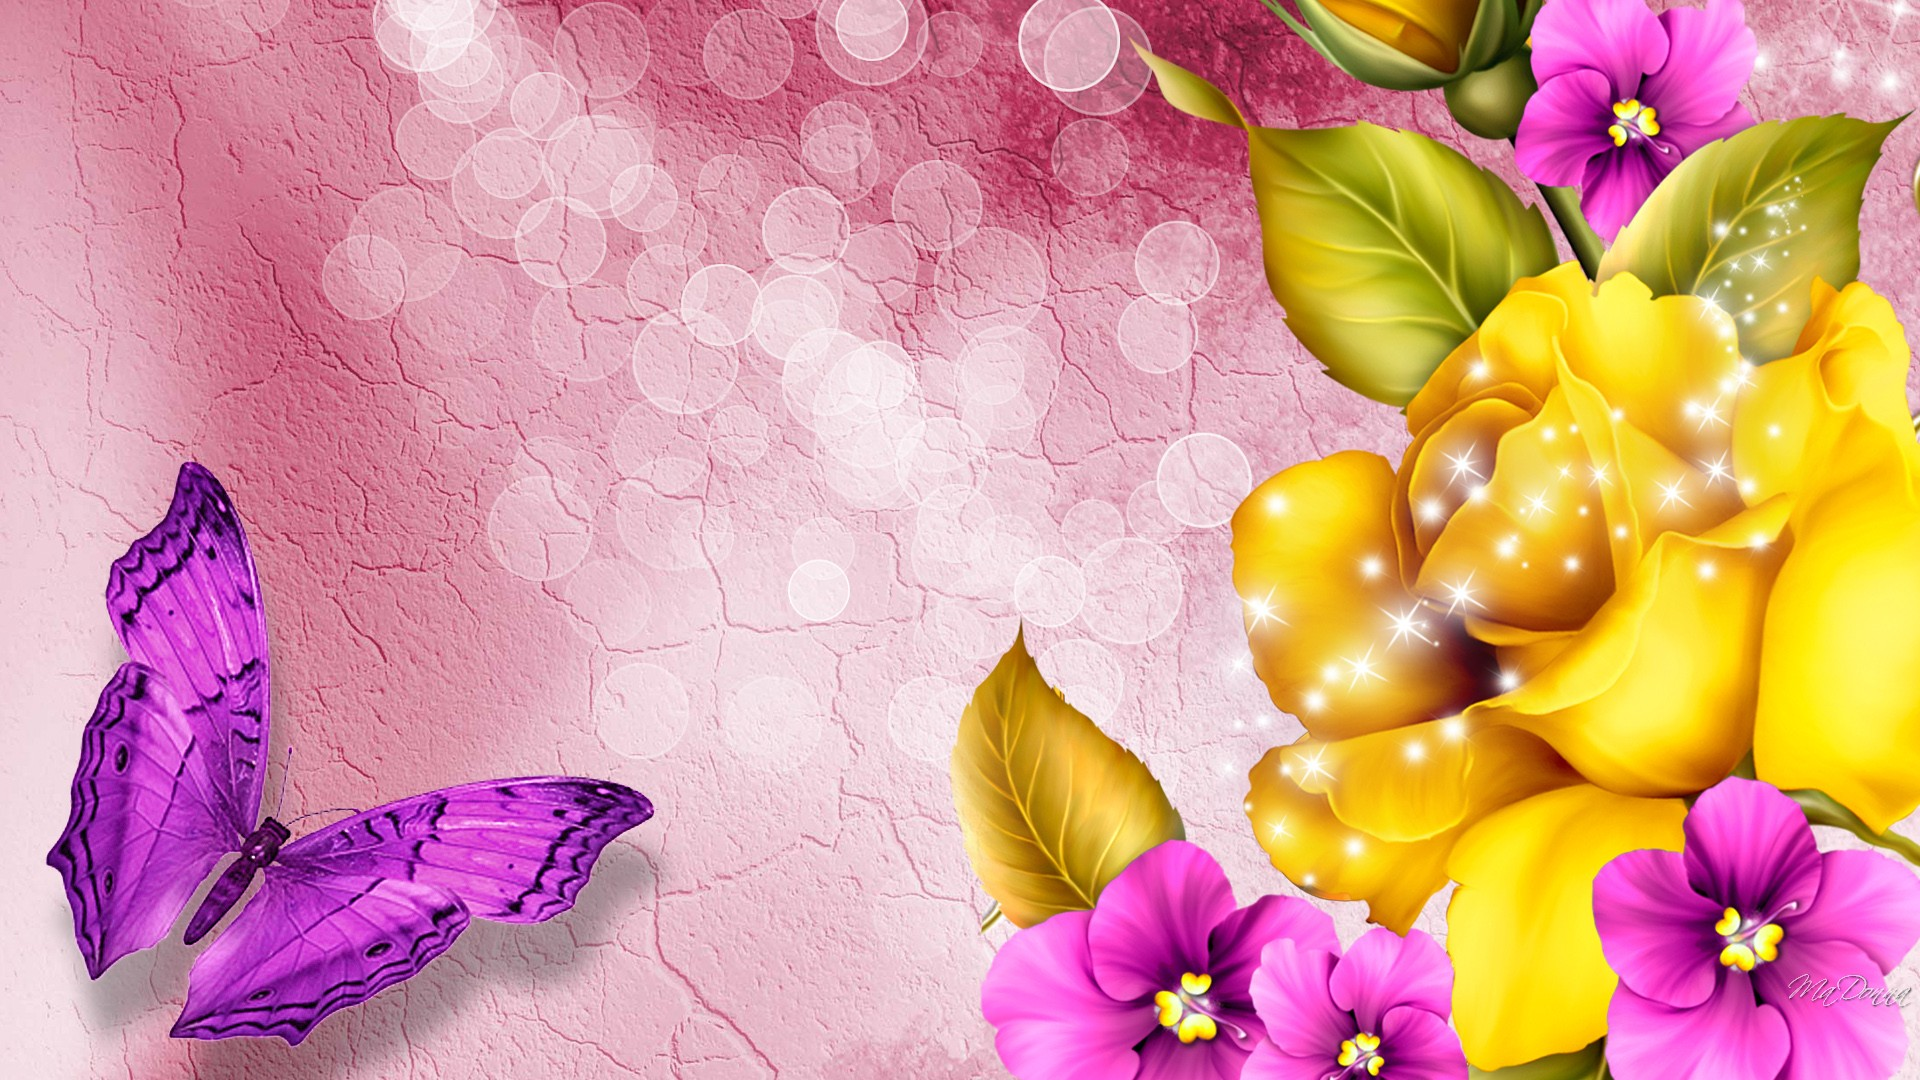 Colorful Butterfly wallpaper   1405132 1920x1080